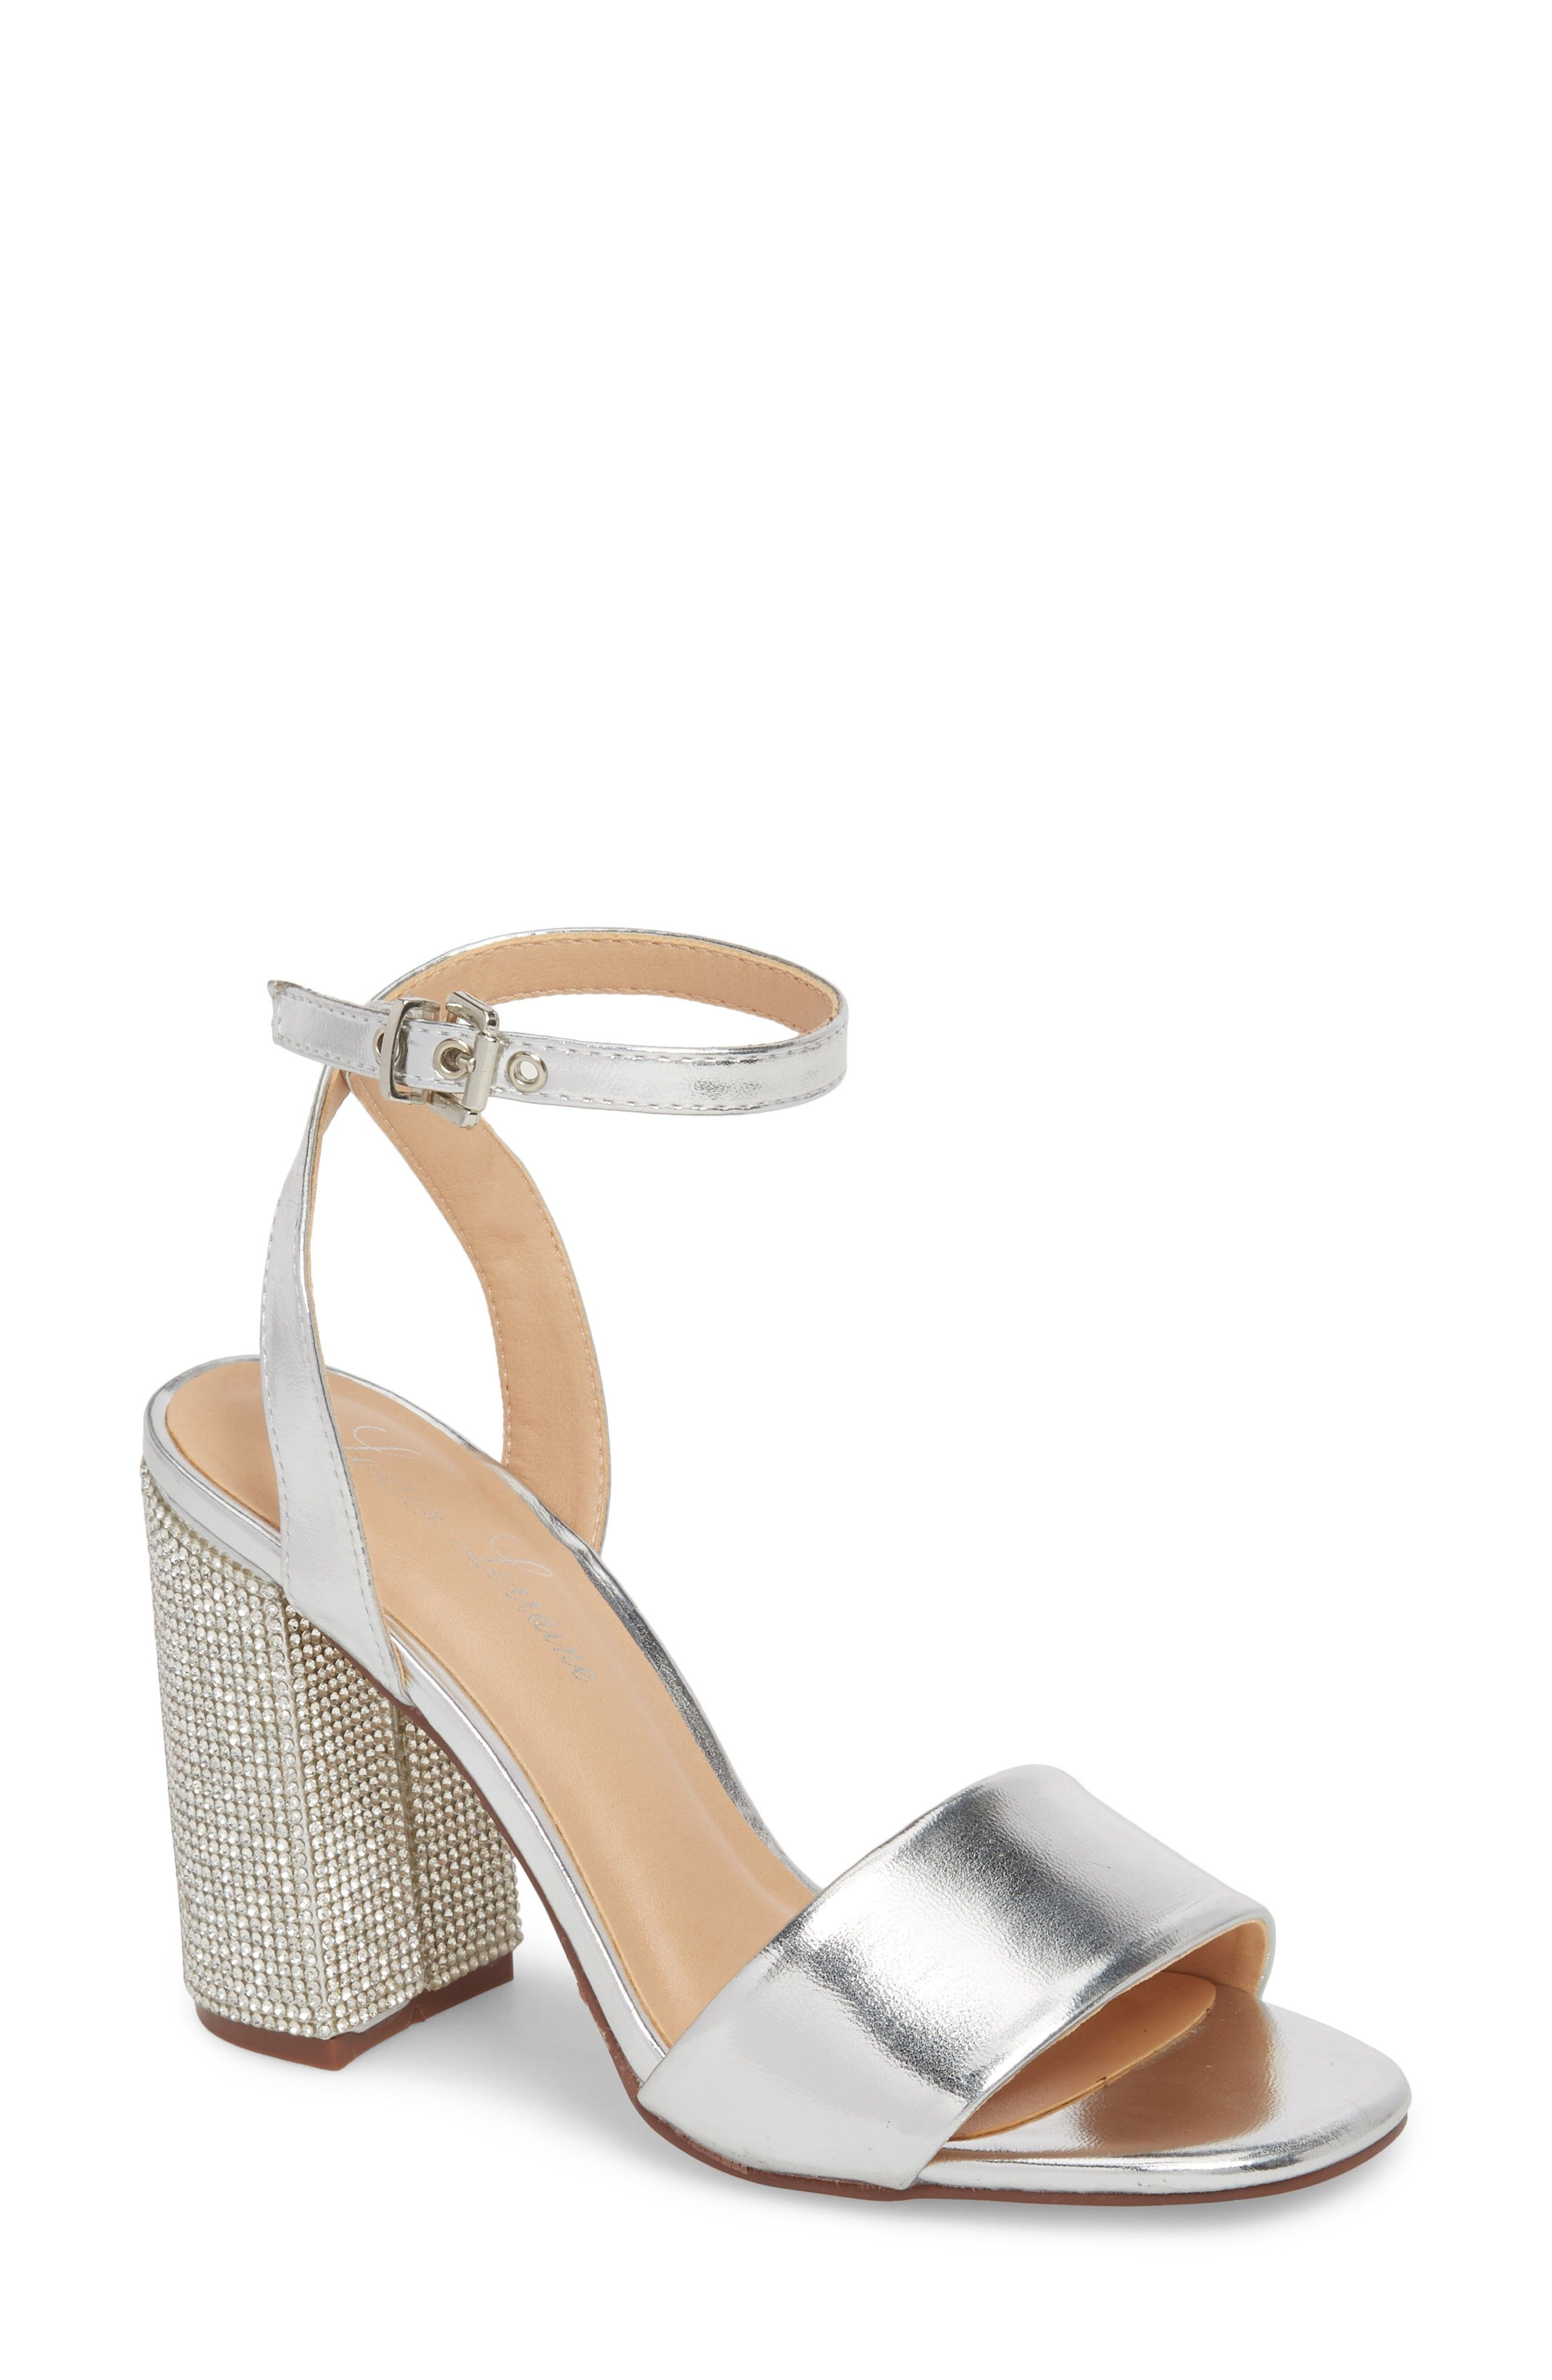 The Best Wedding Guest Shoes (Including